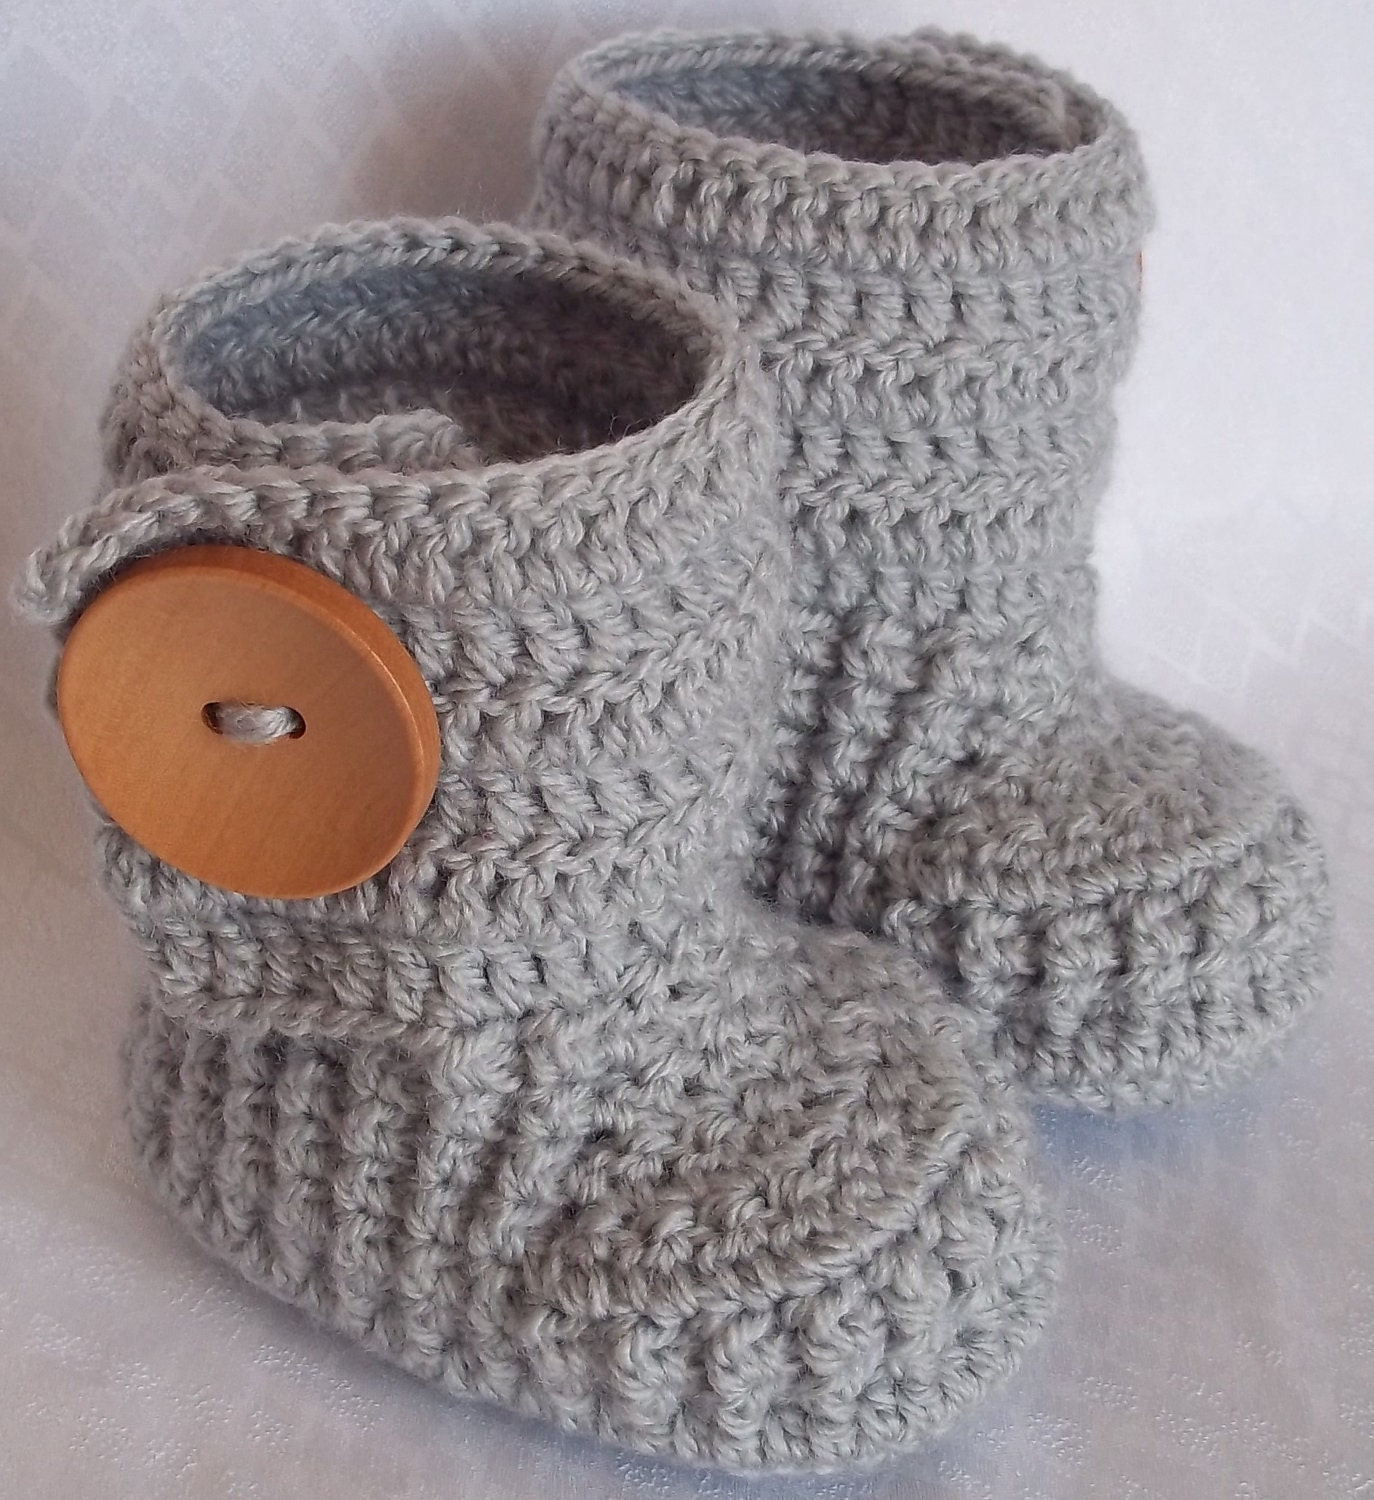 Crochet baby booties for 0-3 M, 3 - 6 M,6-9 M with large wooden buttons,choose your size and colour